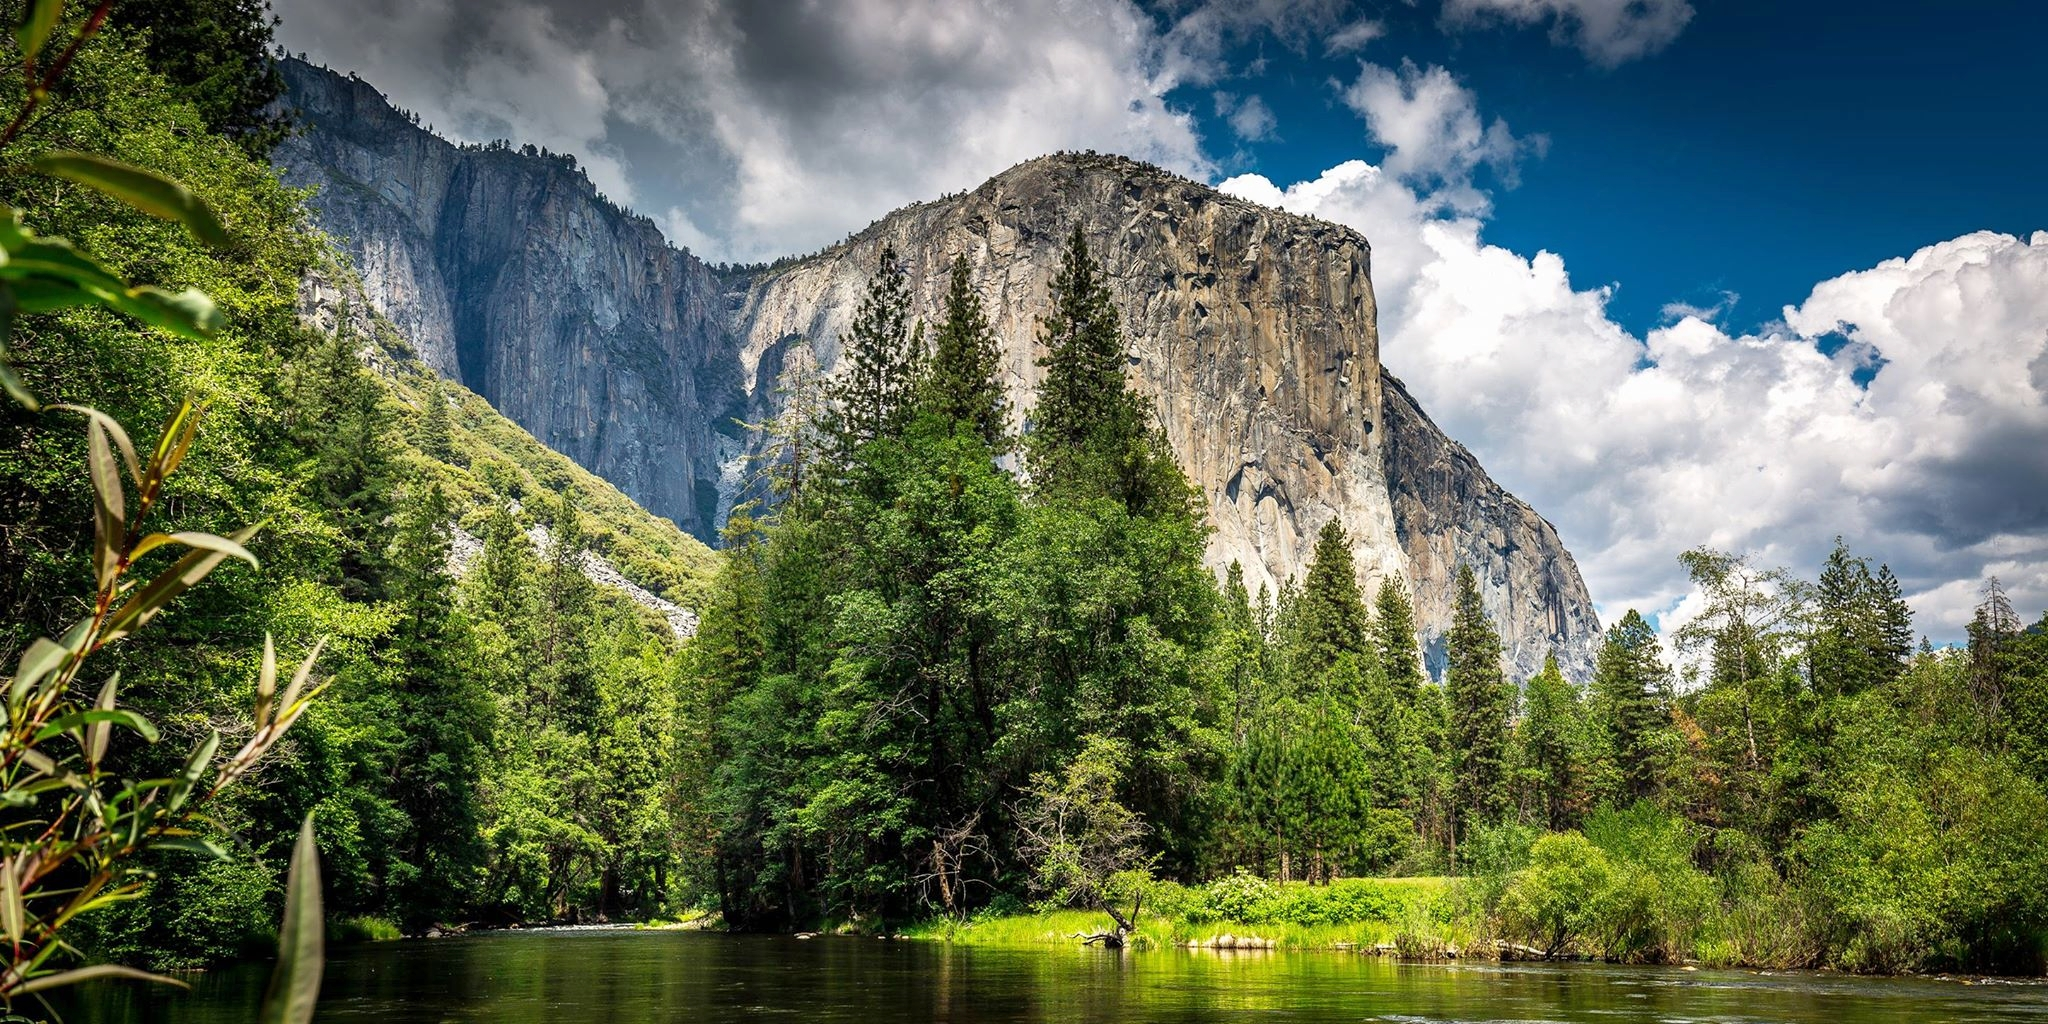 Yosemite National Park, Valley View Turnout